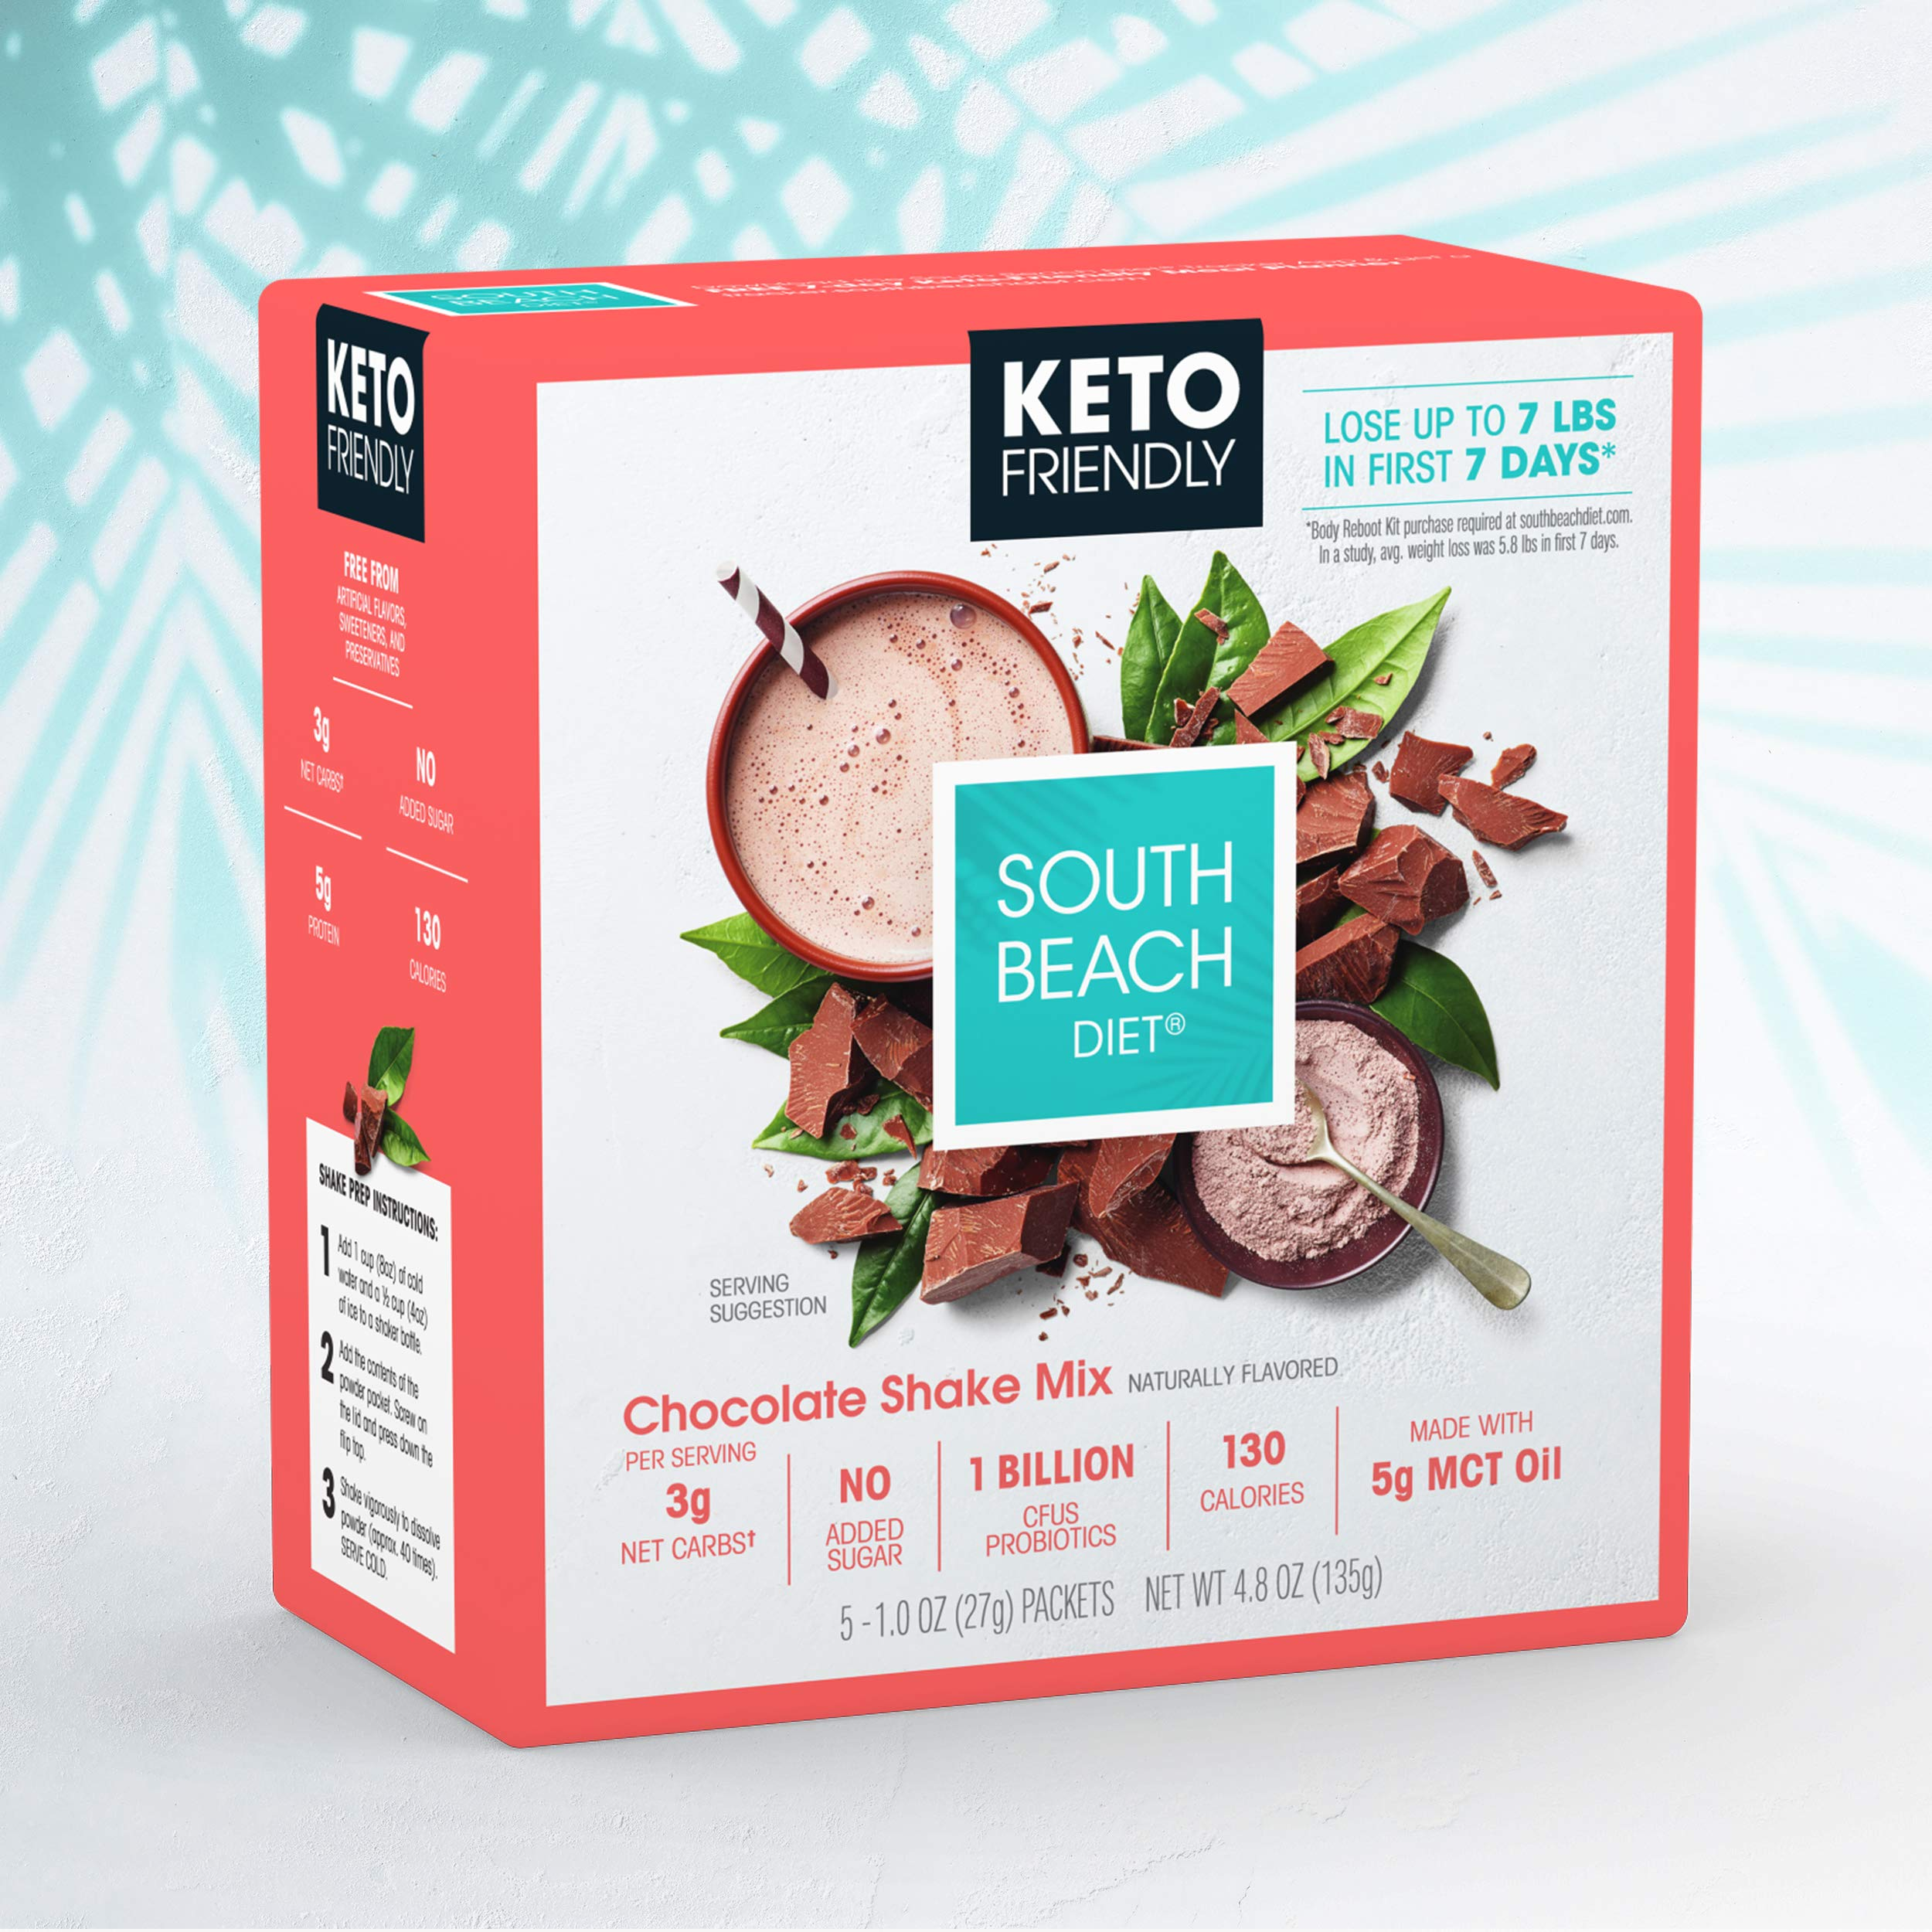 South Beach Diet® Keto-Friendly Shake Mix, Chocolate (20 ct) - Delicious Shakes Made to Support Healthy Weight Loss & Your Keto Lifestyle by South Beach Diet